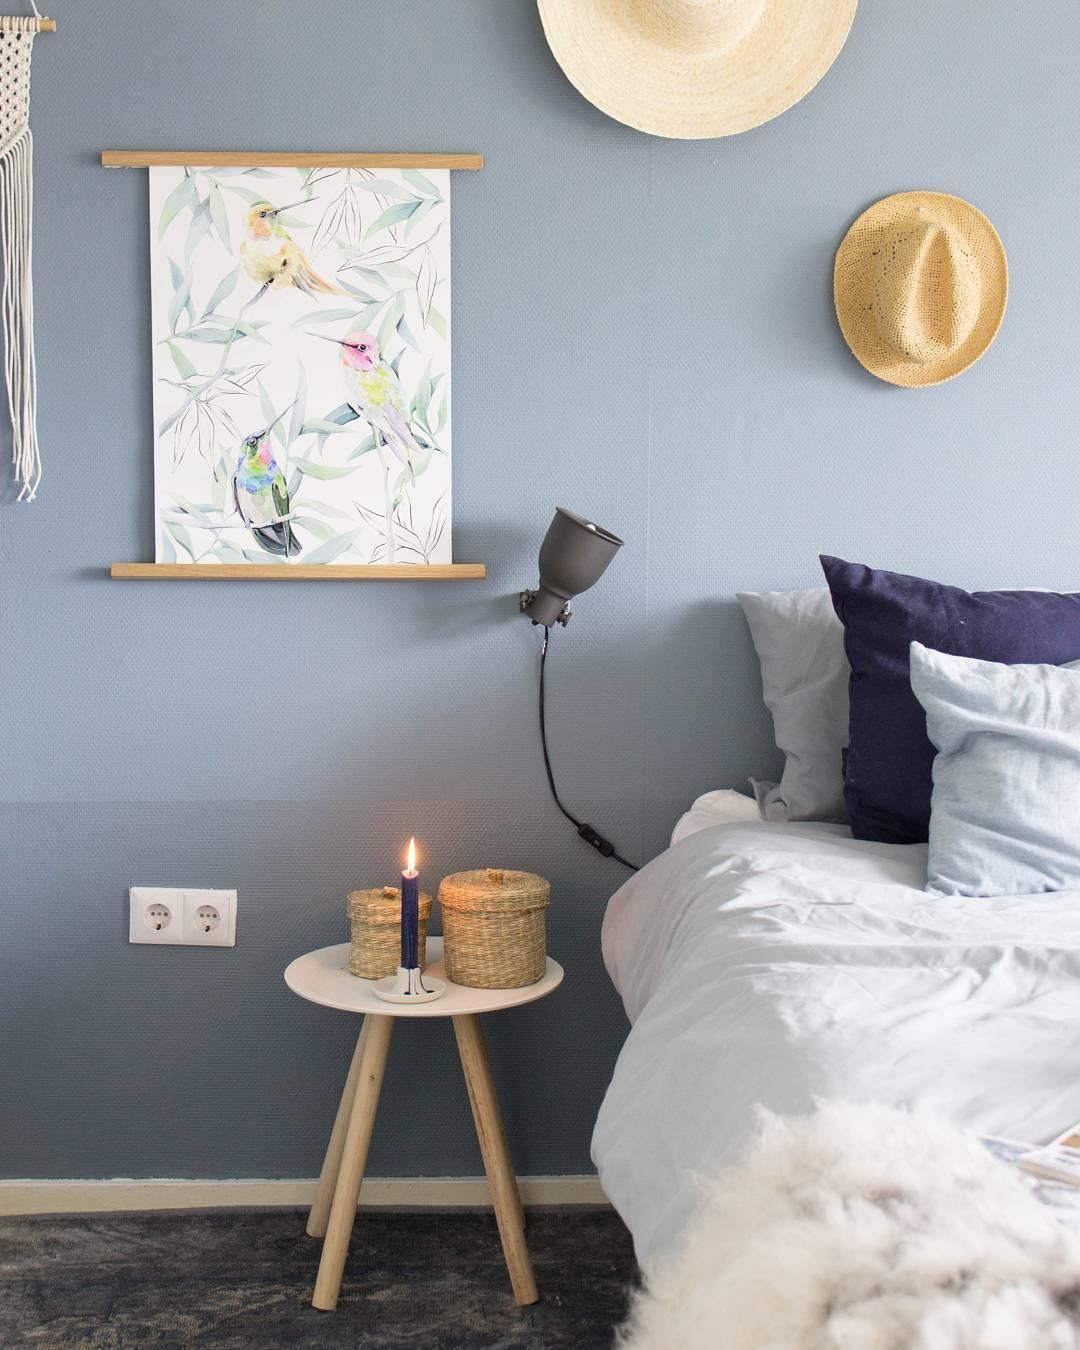 wandfarbe steinblaue sch nheit pinterest wall colors cozy and interiors. Black Bedroom Furniture Sets. Home Design Ideas